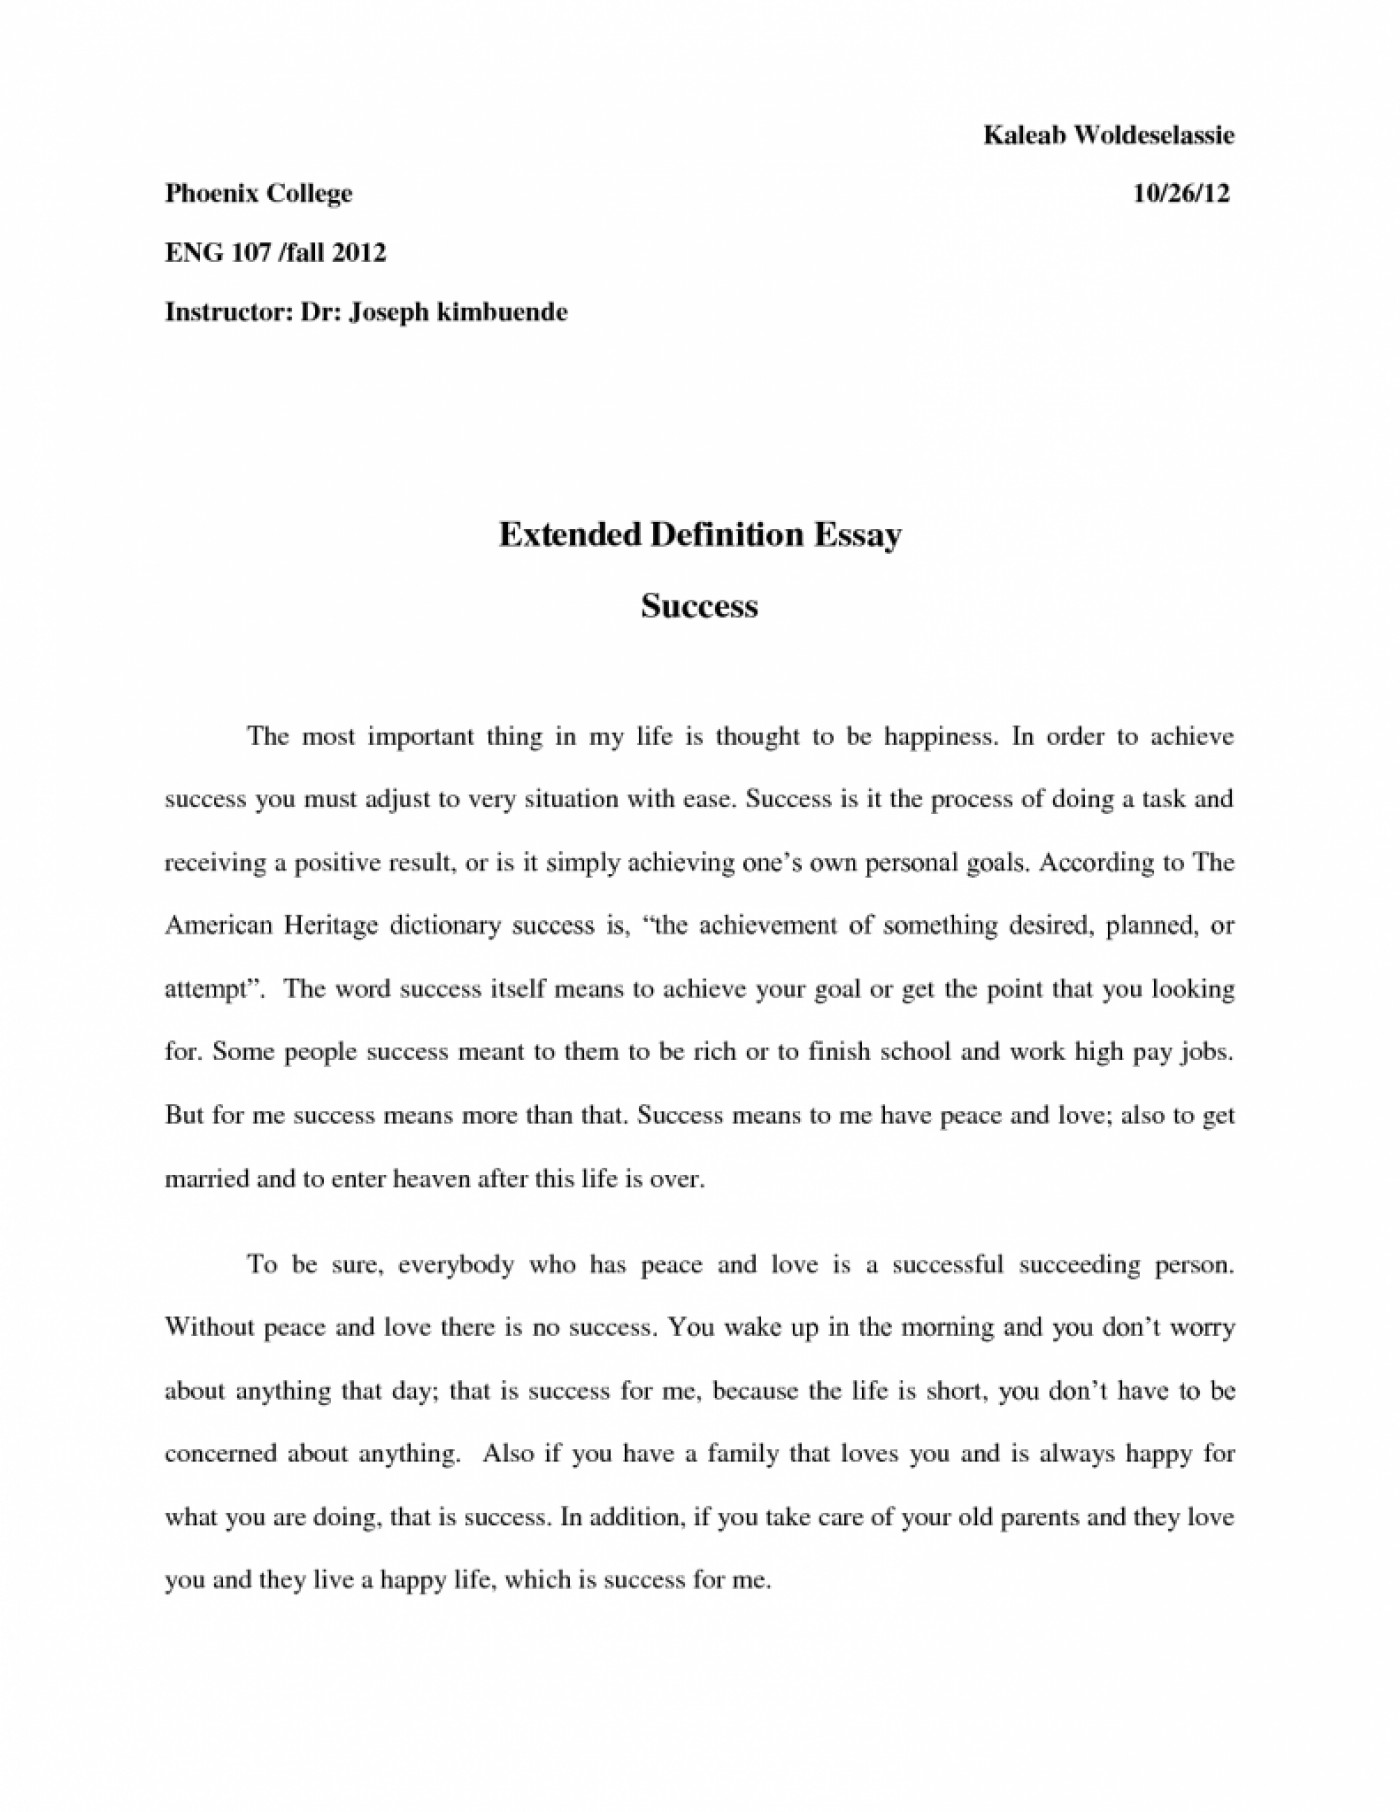 002 Best Soluti Success Definition Essays Perfect Invoice Template Word 791x1024 Extended On Impressive Essay 1400